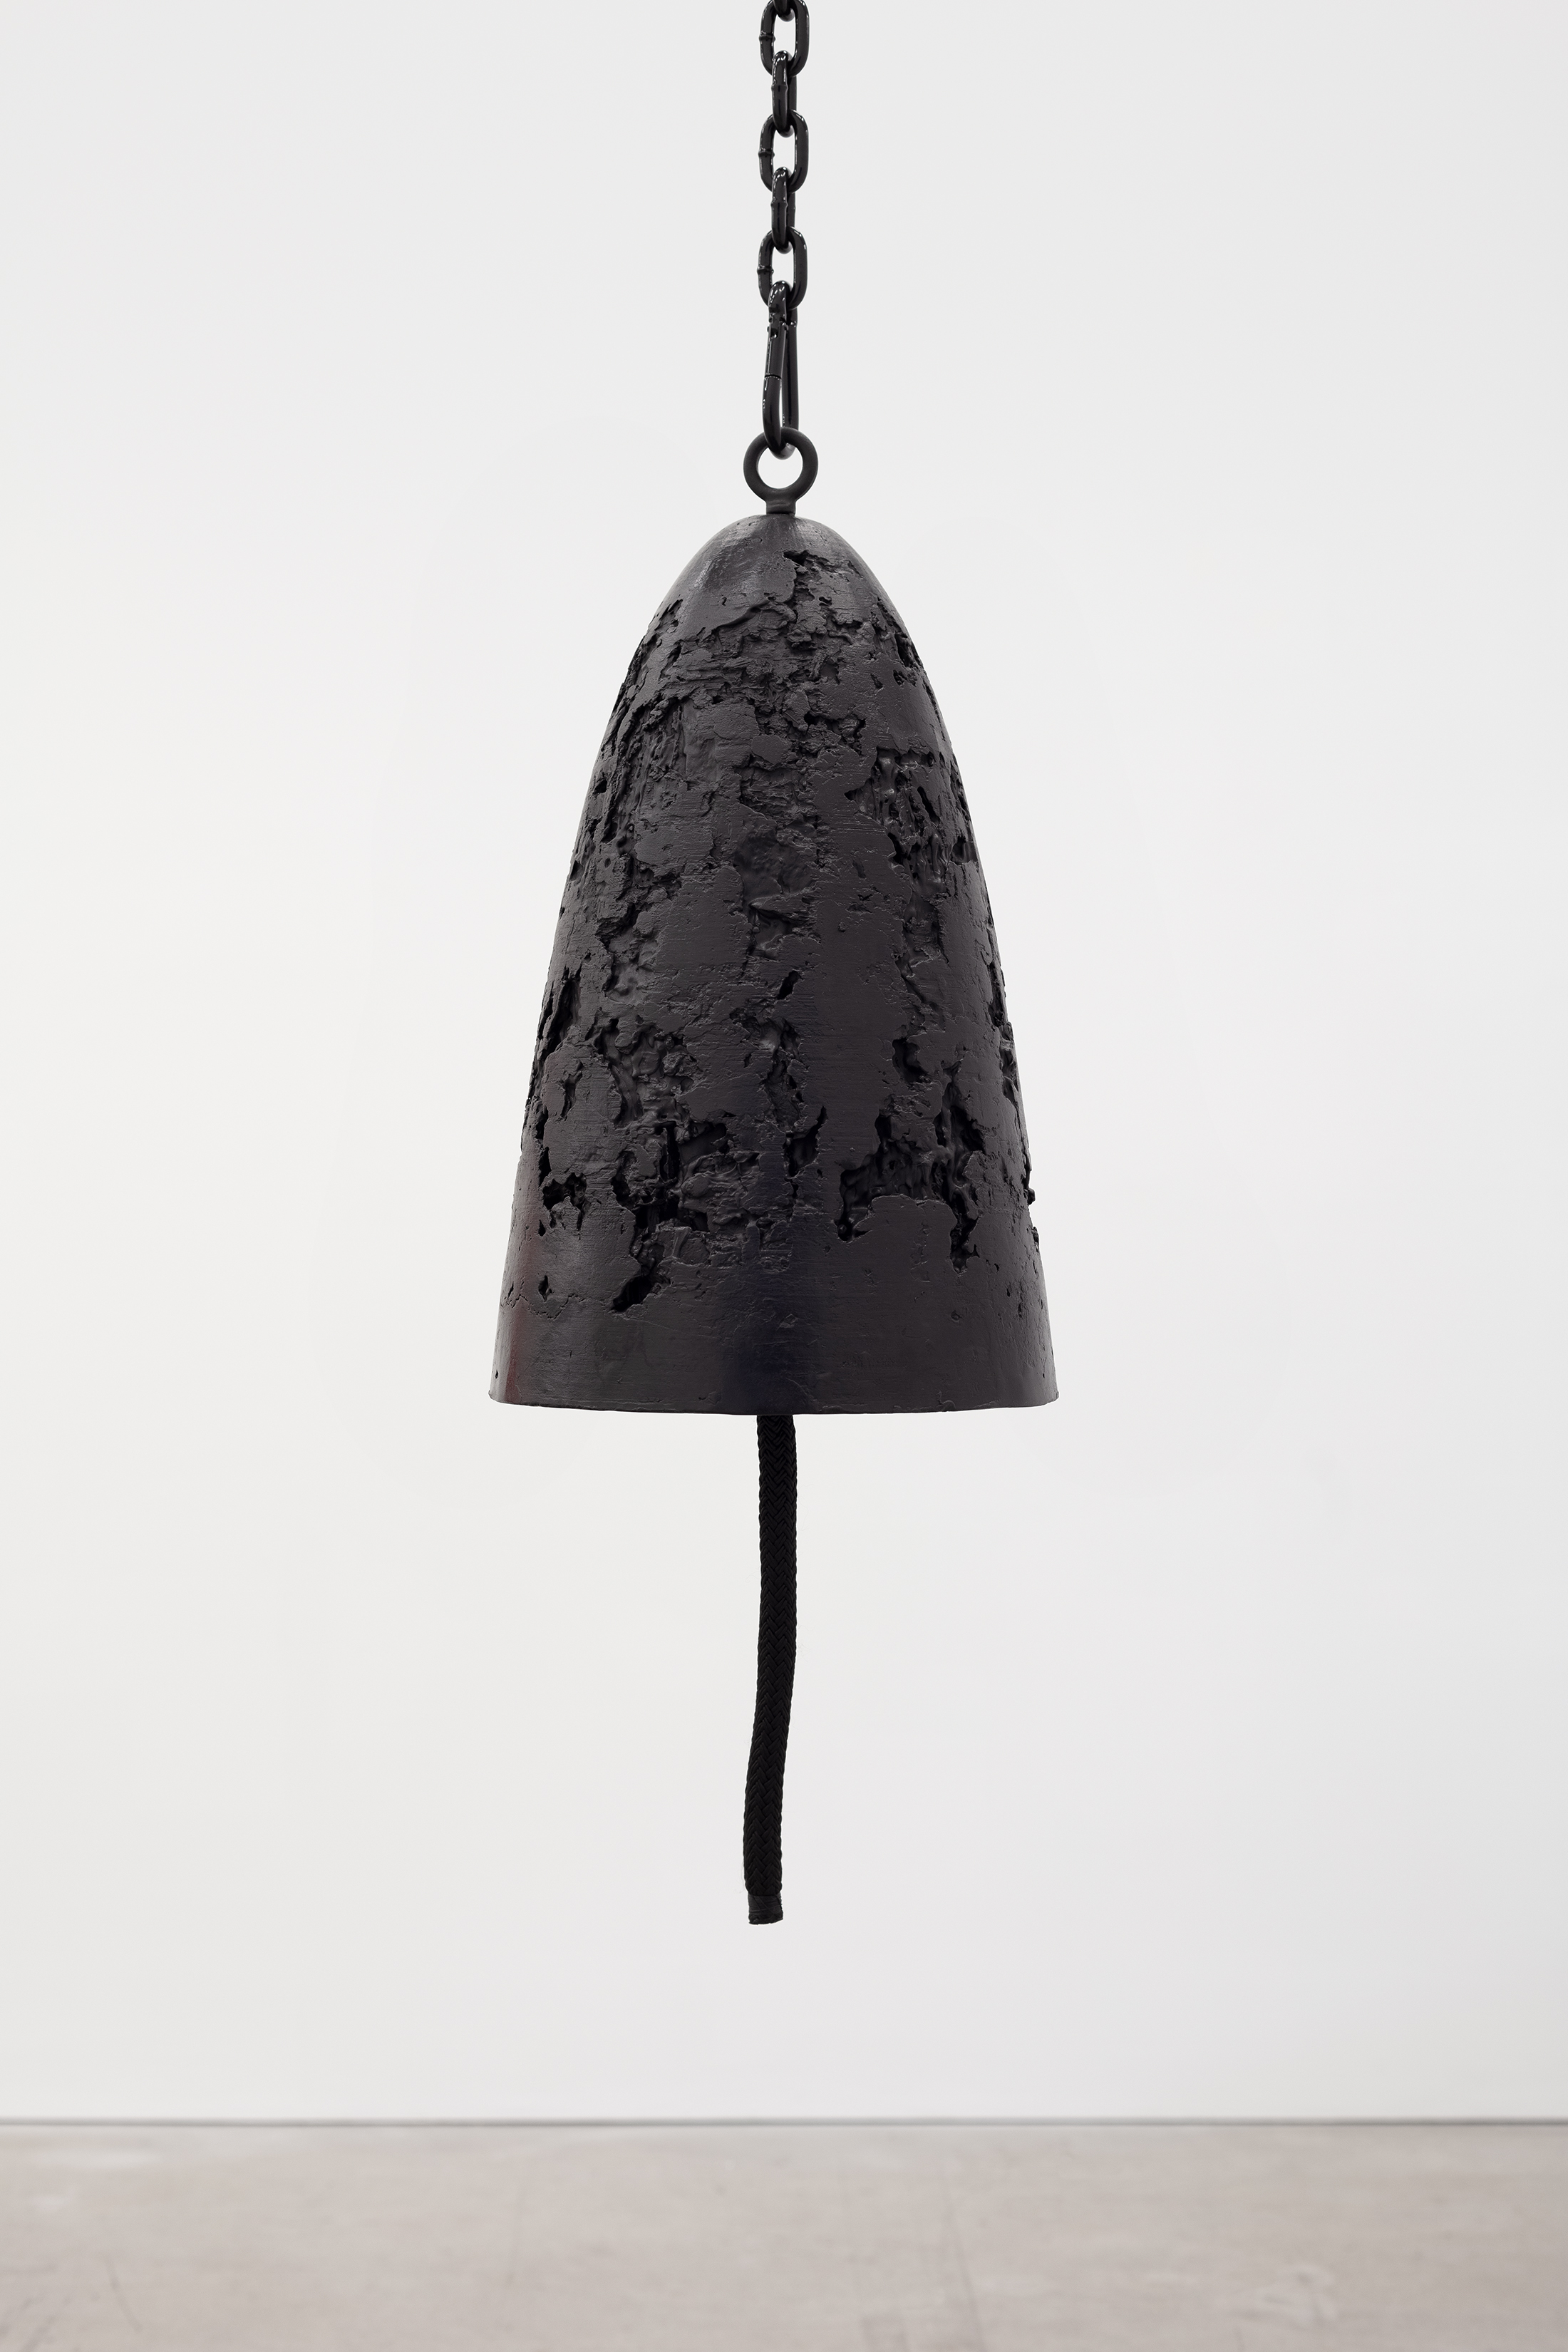 Davina Semo   Protector , 2019 Patinated cast bronze bell, whipped nylon line, wooden clapper, powder-coated chain, hardware Bell: 20 in. tall x 12 1/2 in. diameter